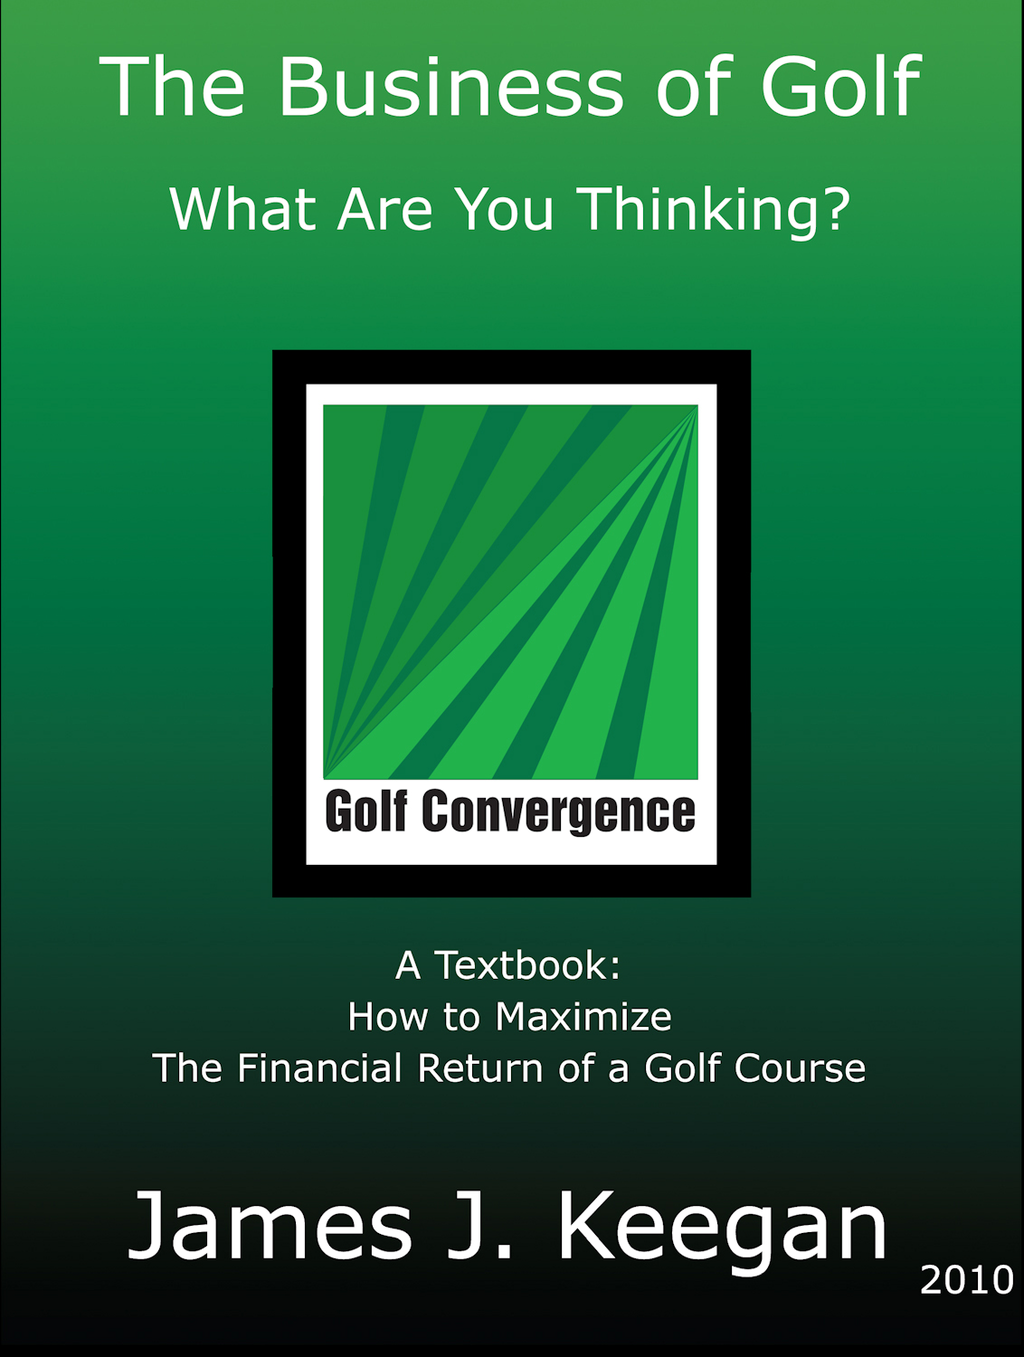 Business of Golf-What Are You Thinking: How to Maximize the Financial Return of a Golf Course By: James Keegan